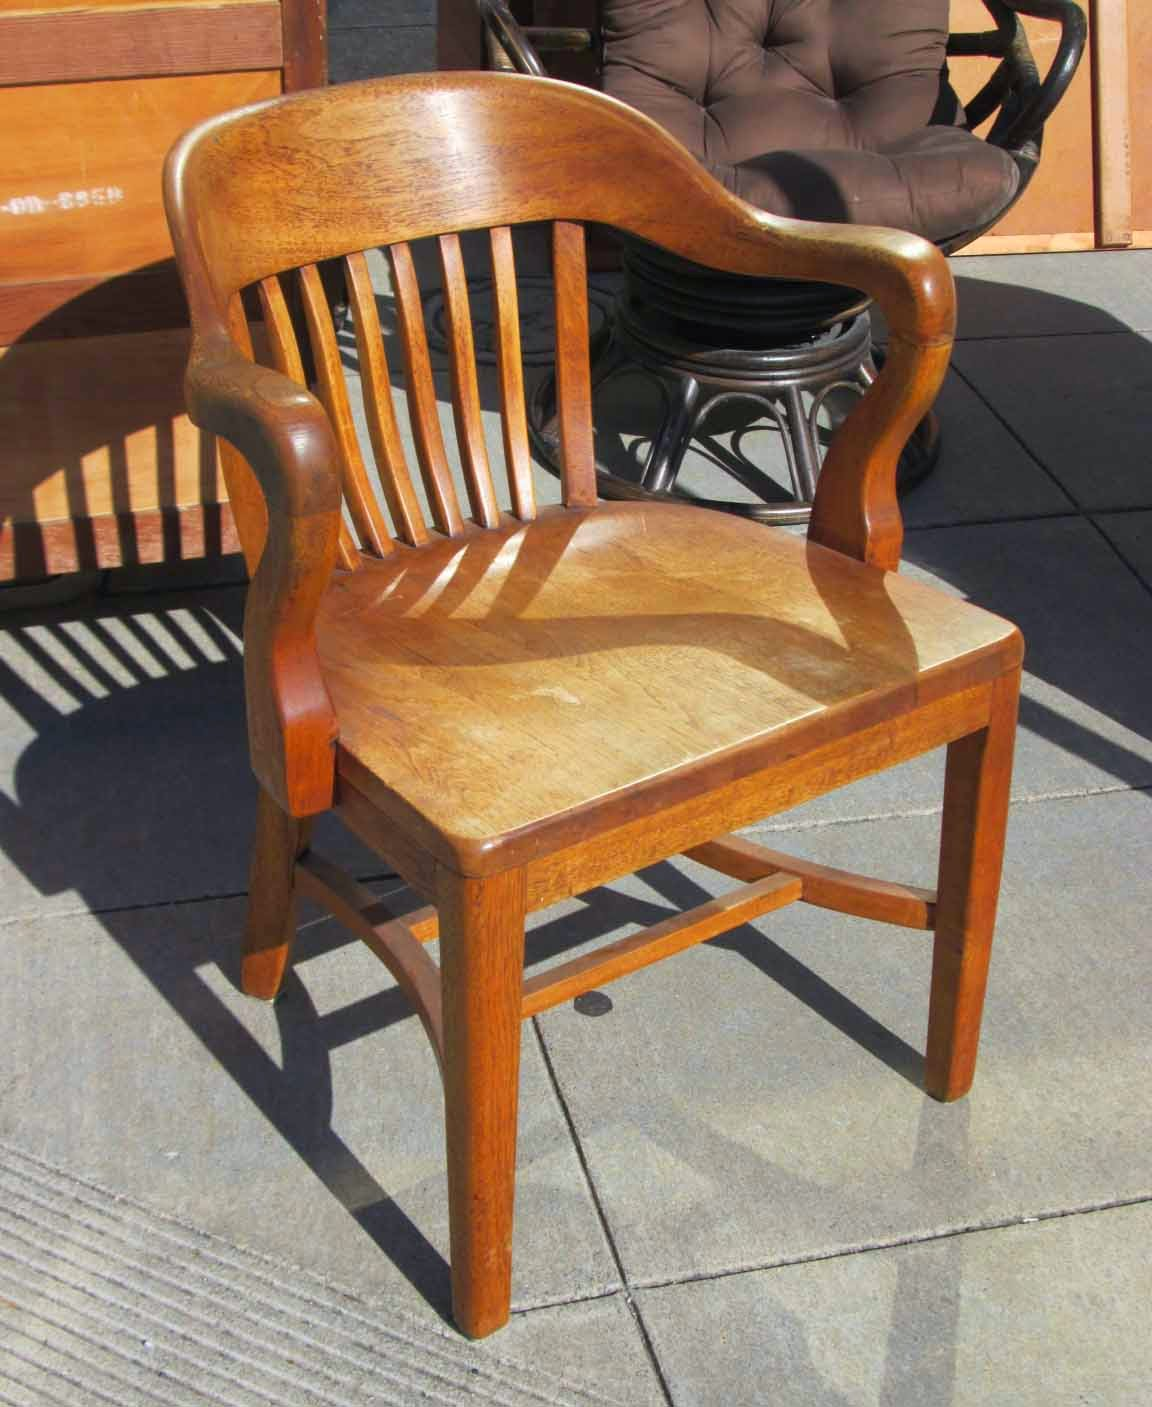 UHURU FURNITURE COLLECTIBLES SOLD Antique Oak Bankers Chair 60